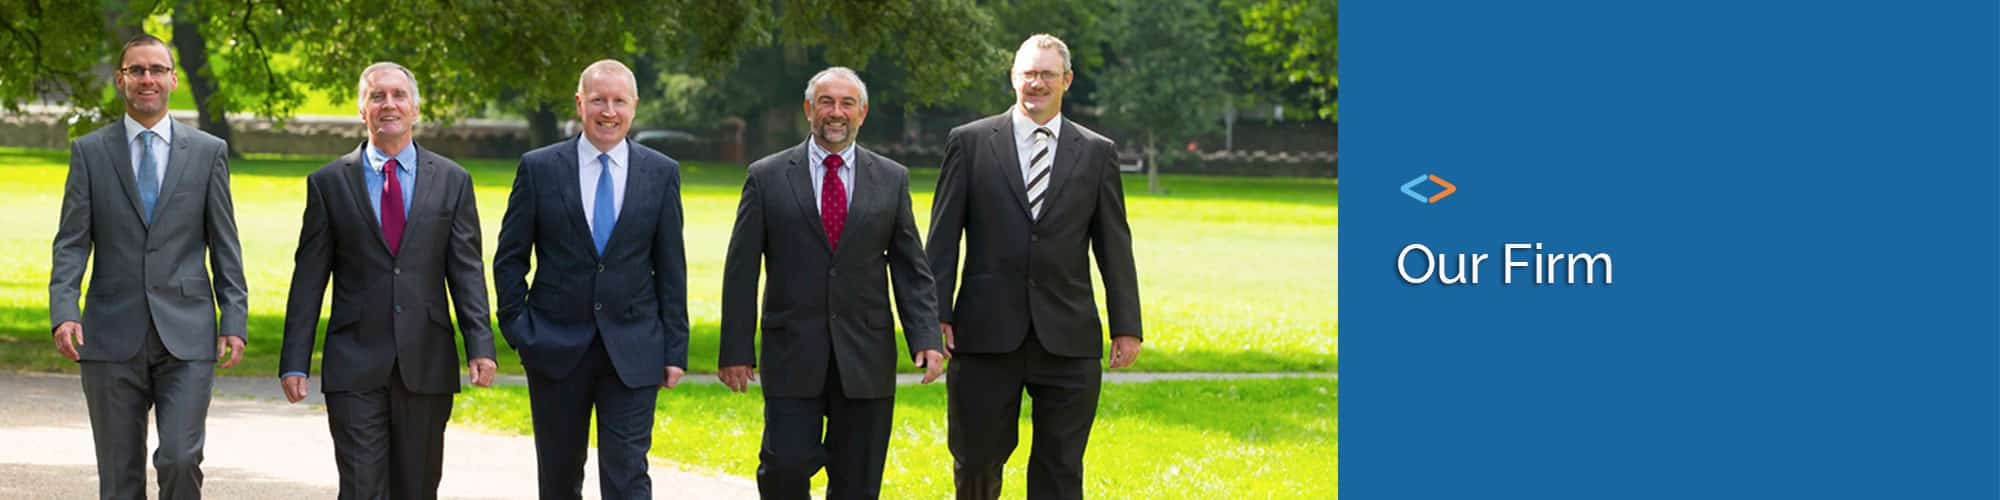 Our Firm | Financial Advice